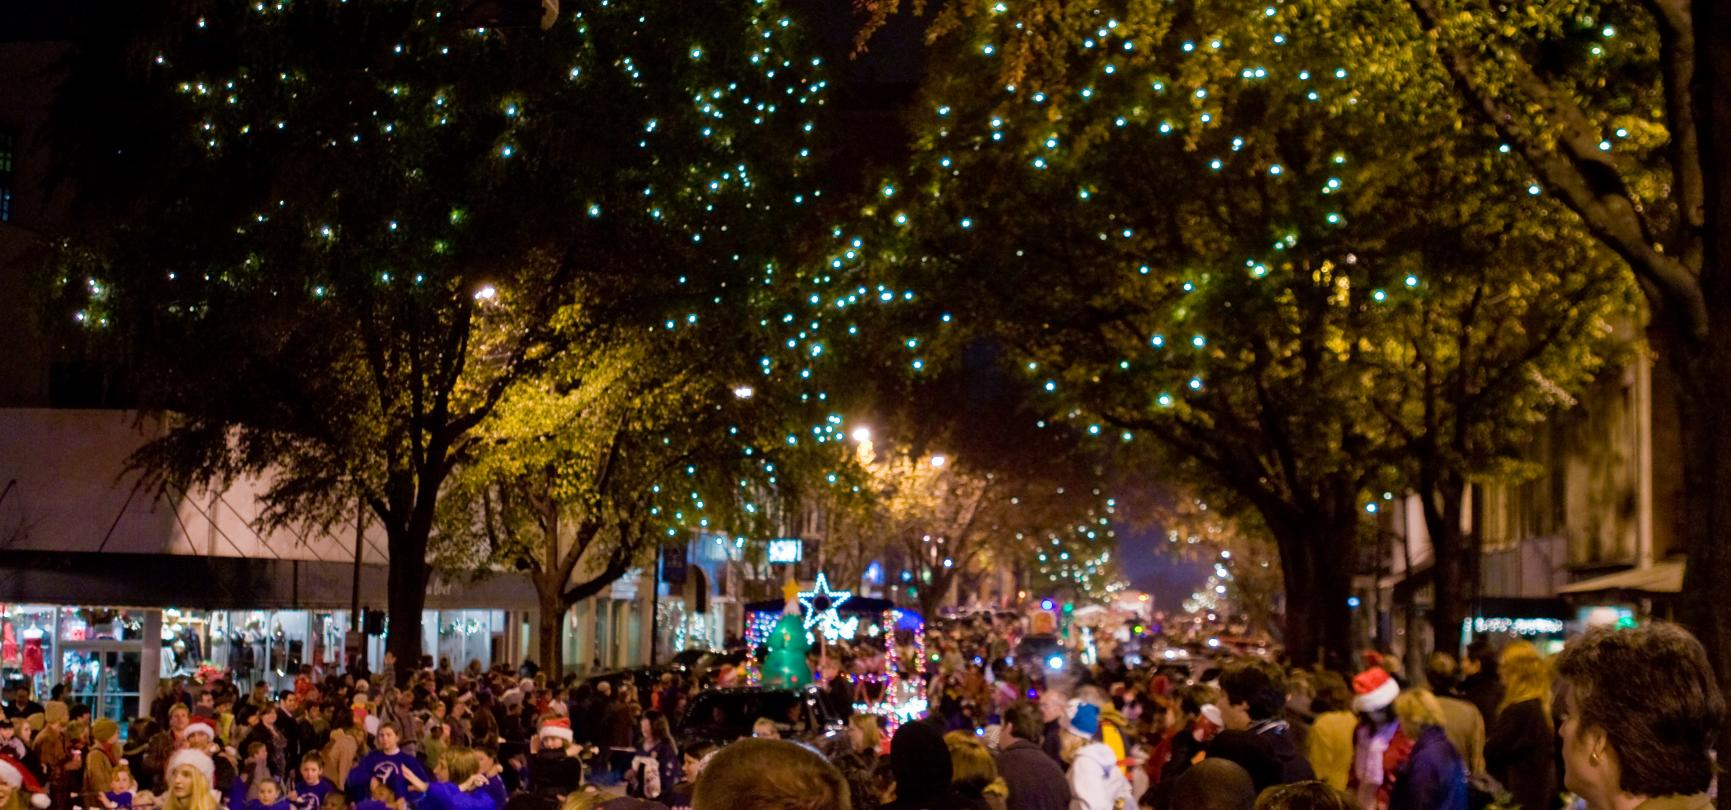 Athens Ga Christmas Parade 2020 Holiday Festivals and Events in Athens, GA